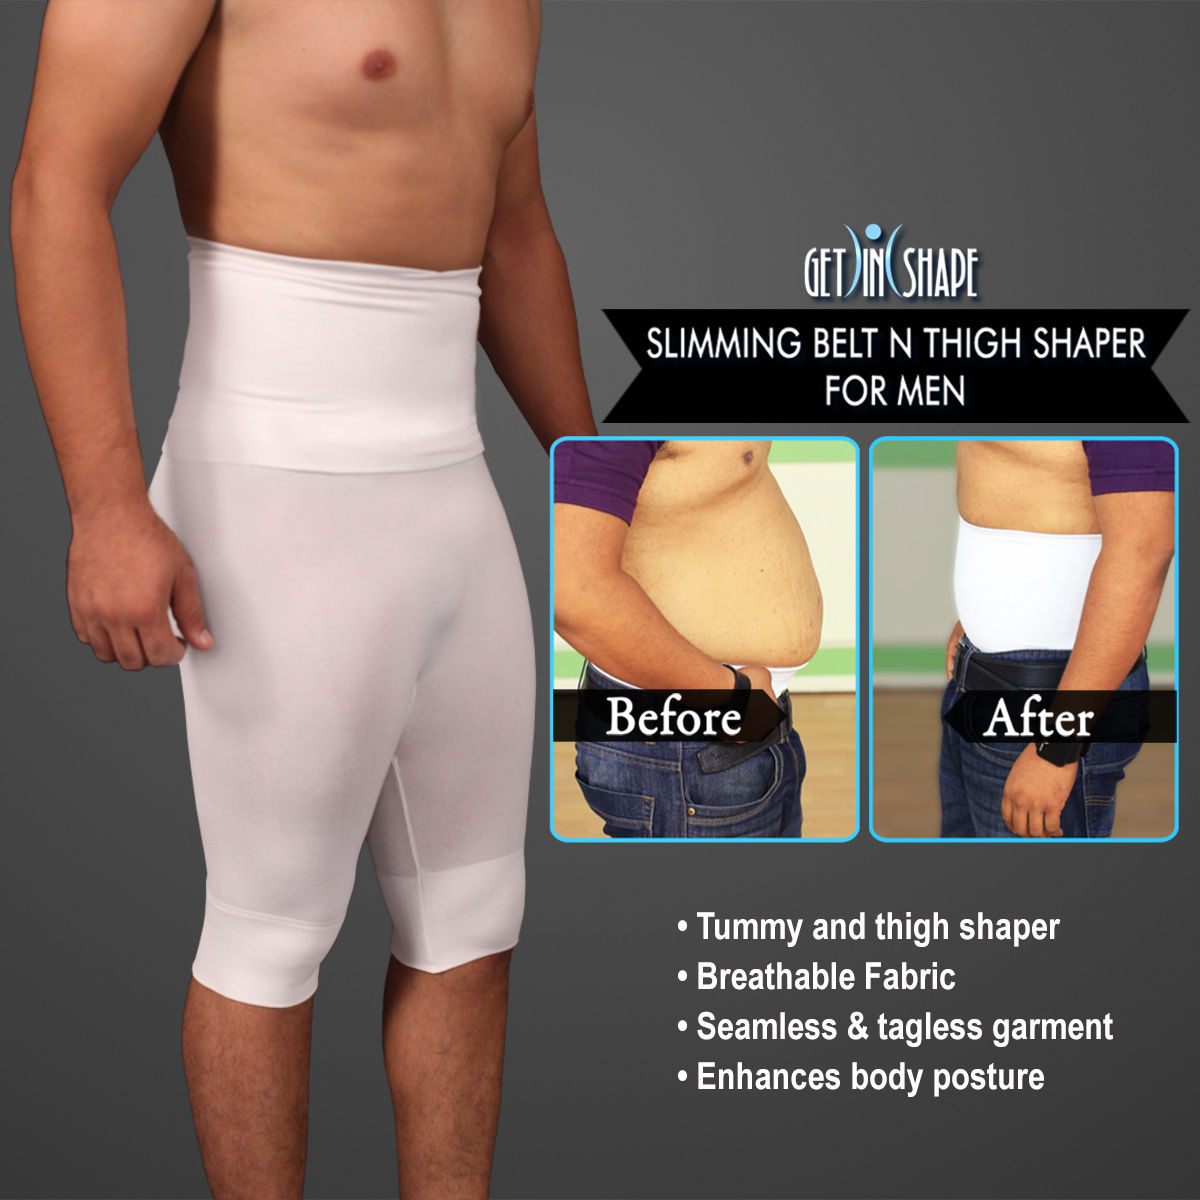 c12d988c88 Buy Get In Shape Slimming Belt n Thigh Shaper for Men Online at Best Price  in India on Naaptol.com